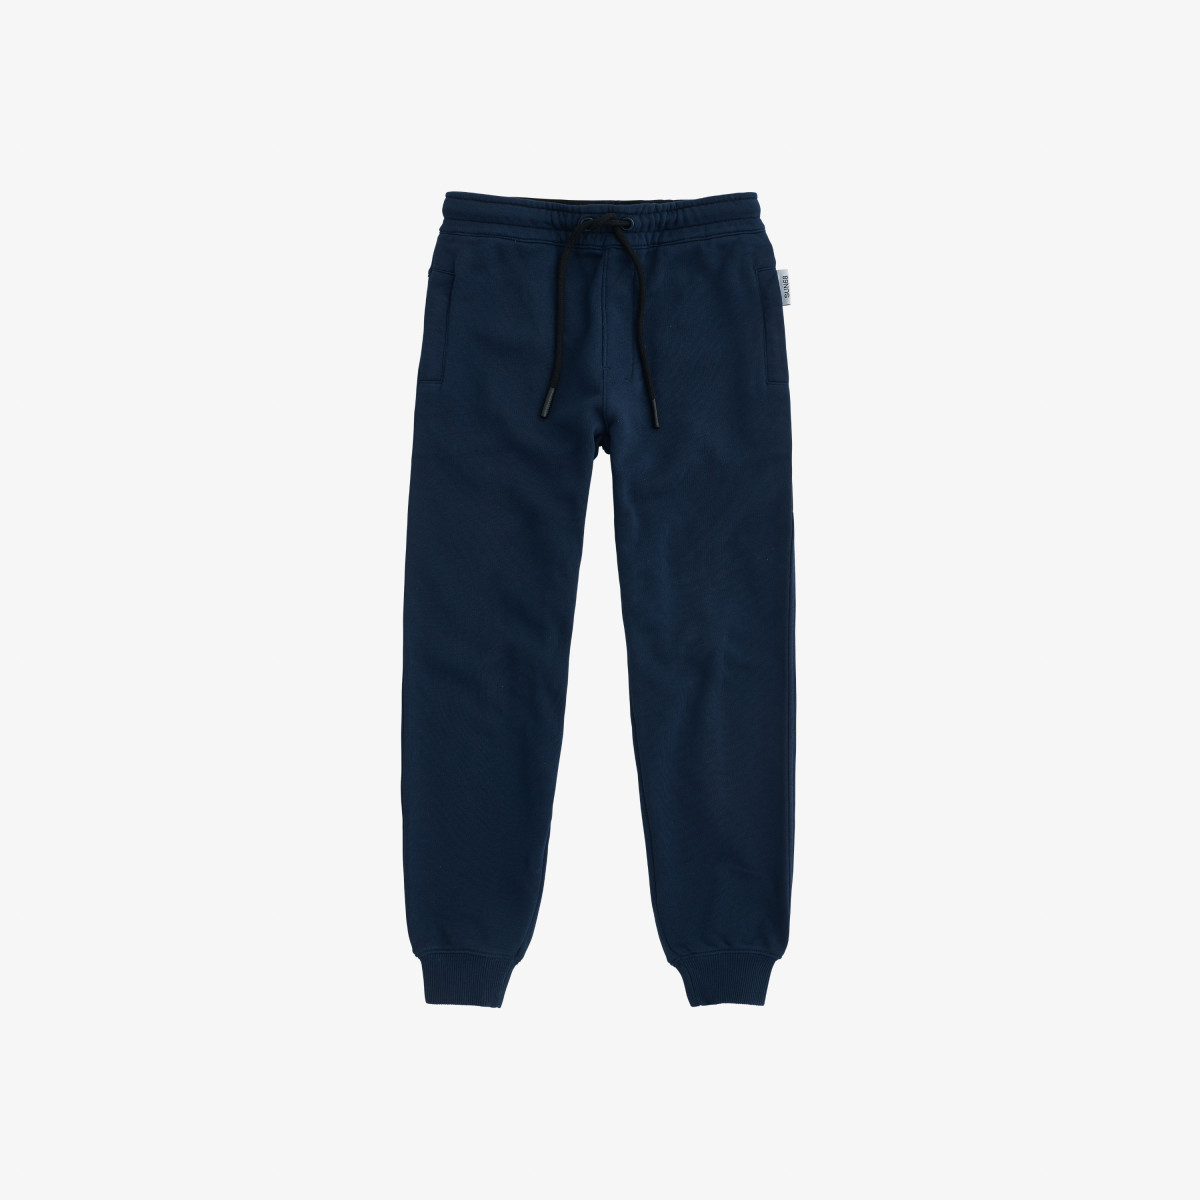 BOY'S PANT BASIC COTT. FL. NAVY BLUE